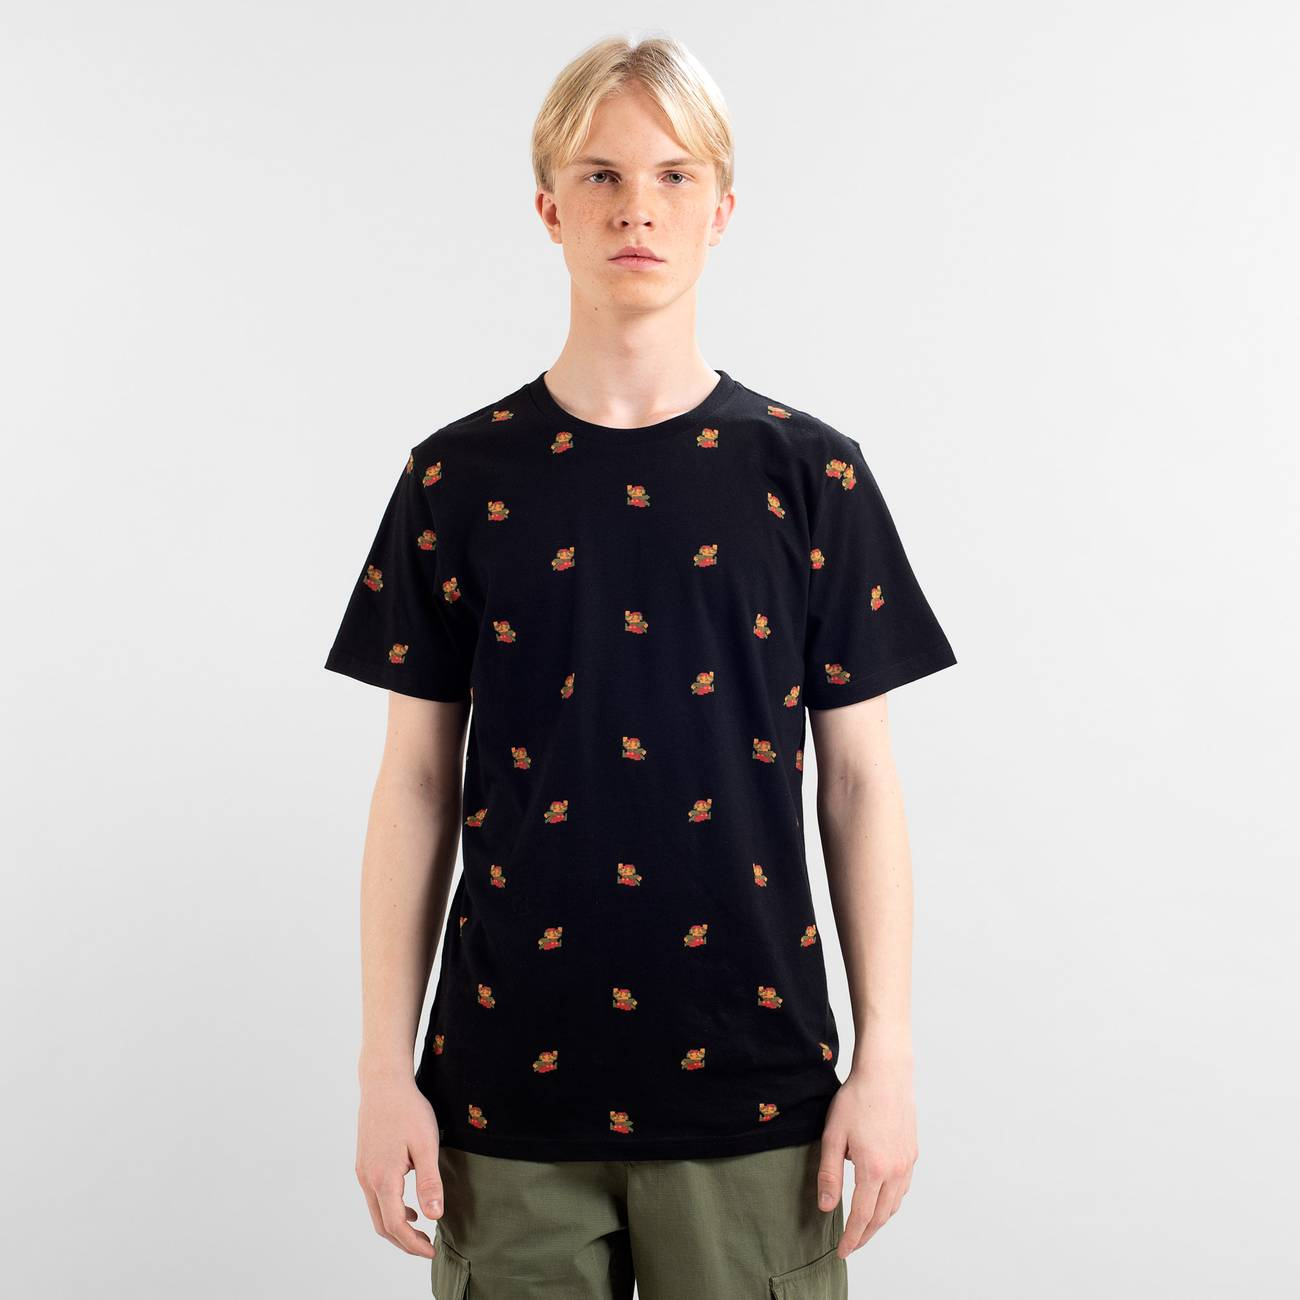 T-shirt Stockholm Super Mario Pattern Black